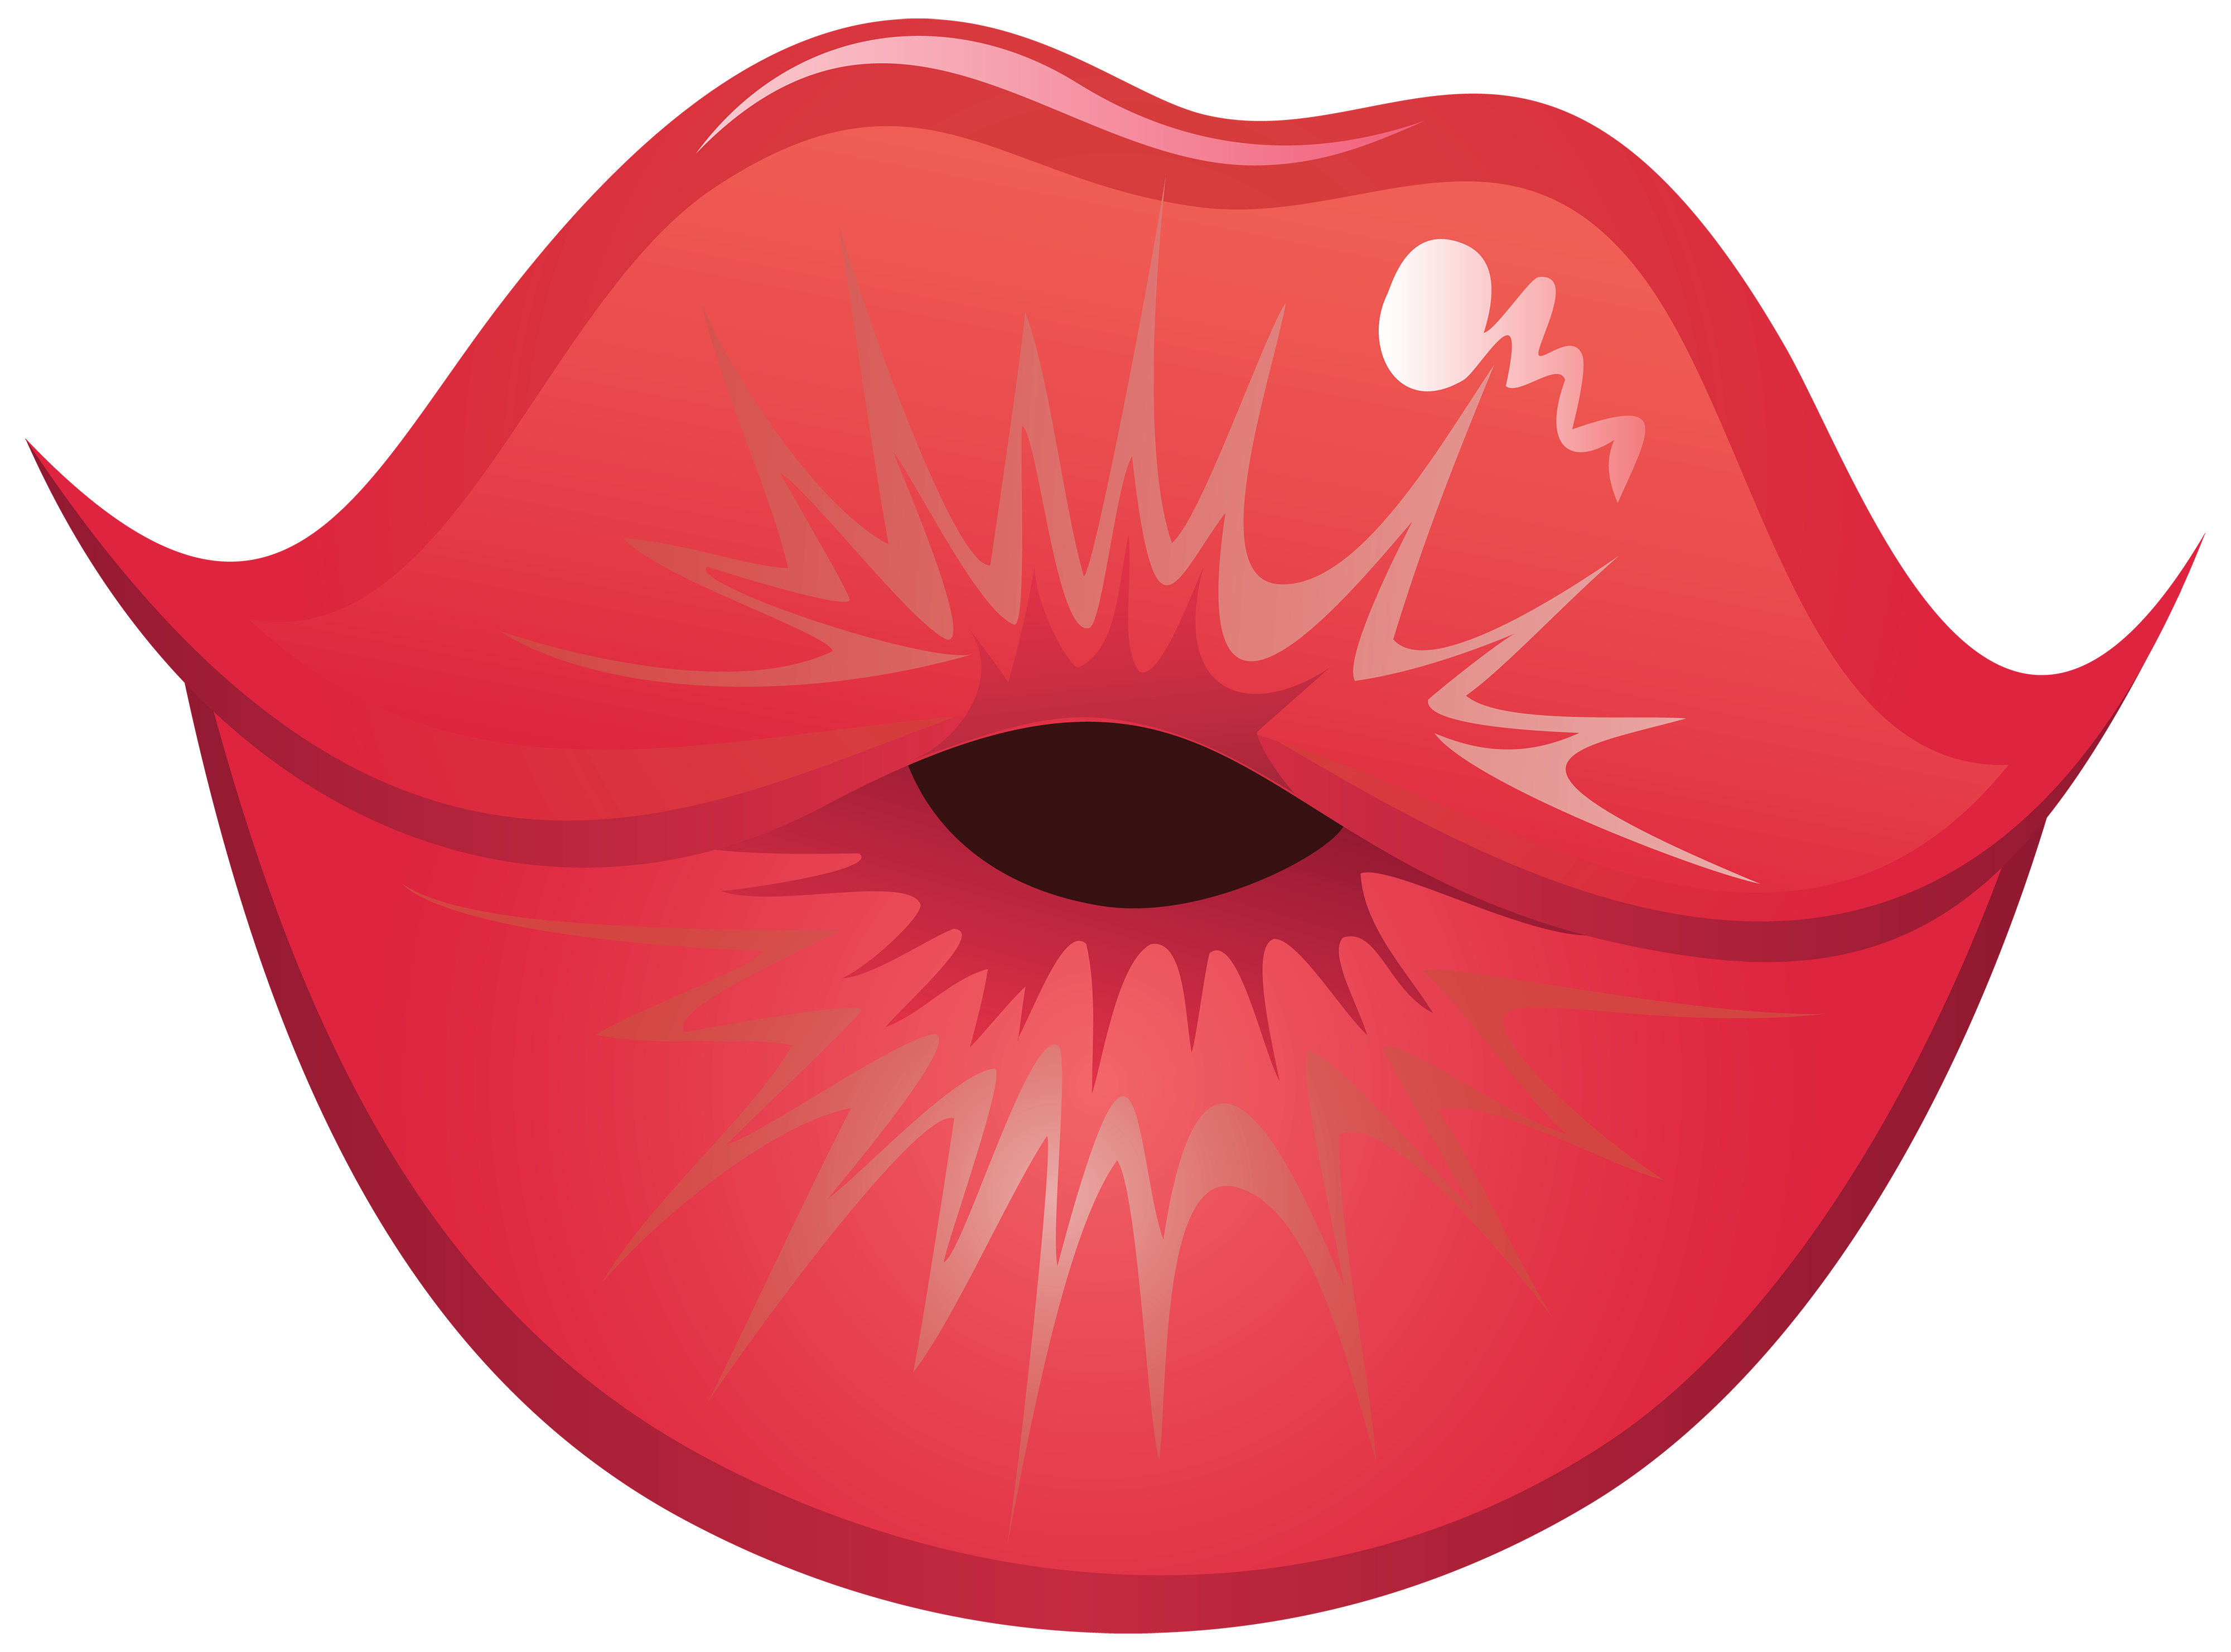 4000x2962 Kissing Lips Clipart